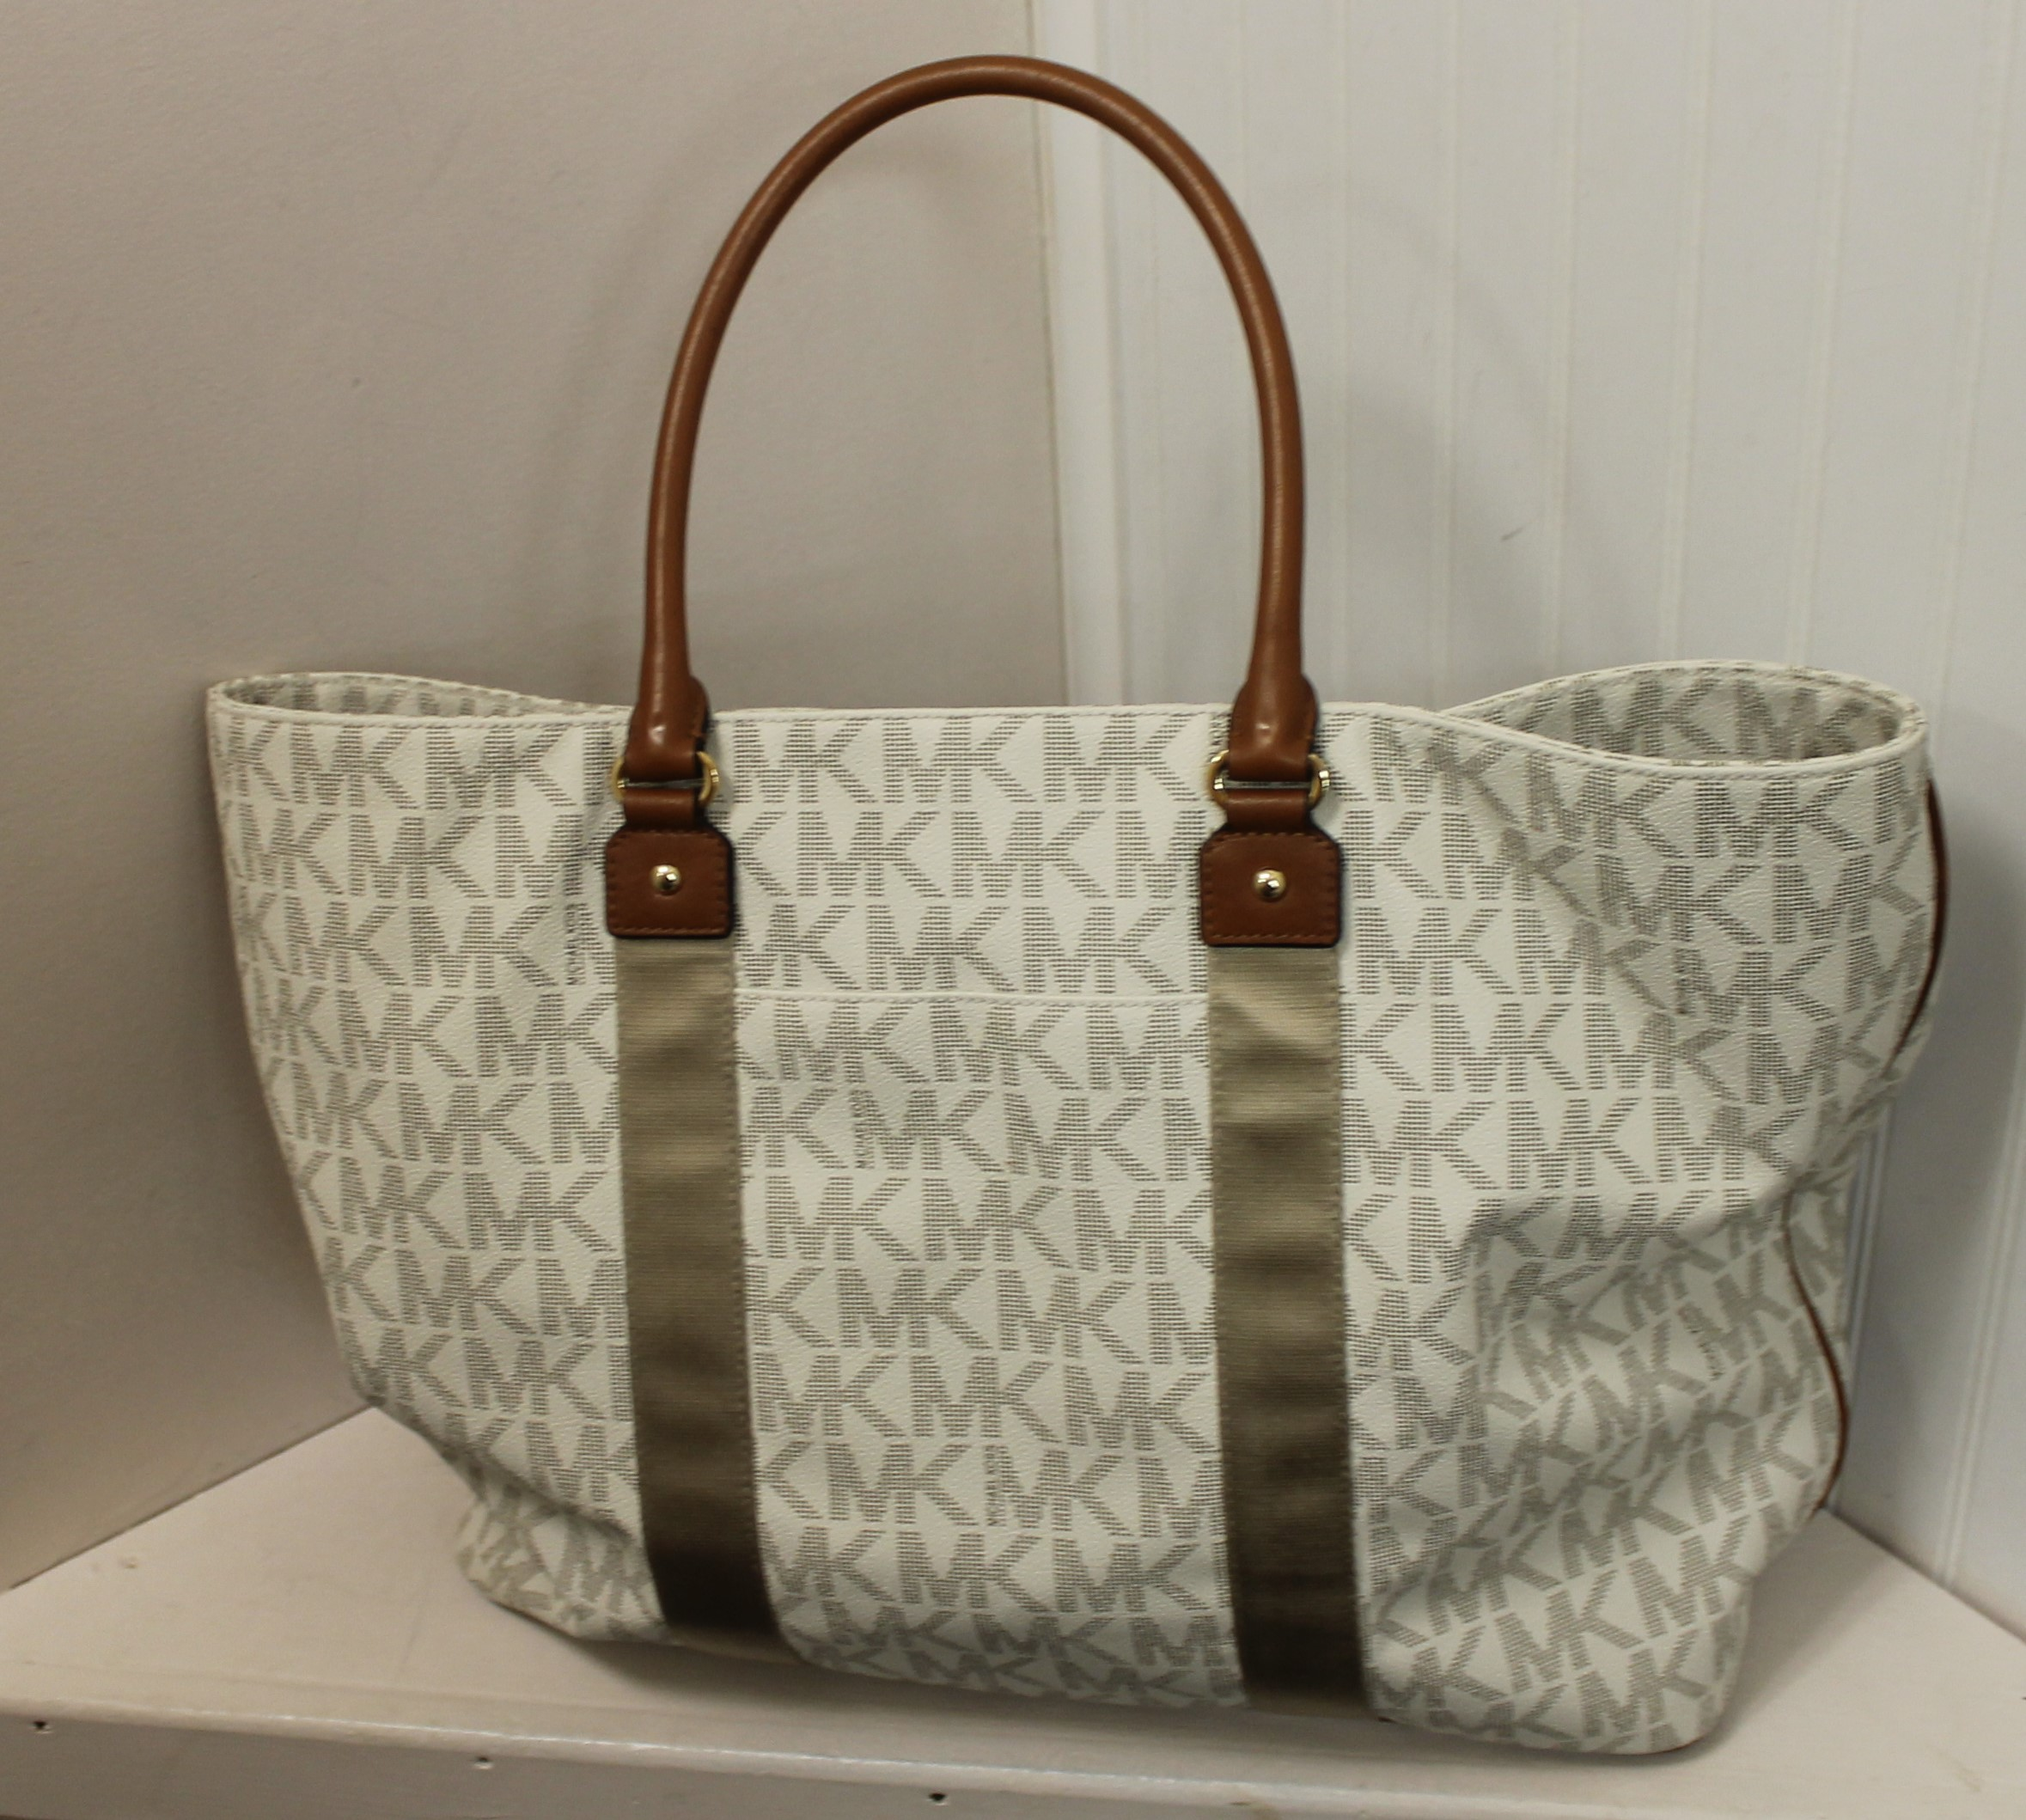 MICHAEL-KORS-WHITE-BROWN-GRAY-LEATHER-AND-CANVAS-LOGO-TOTE_69120E.jpg